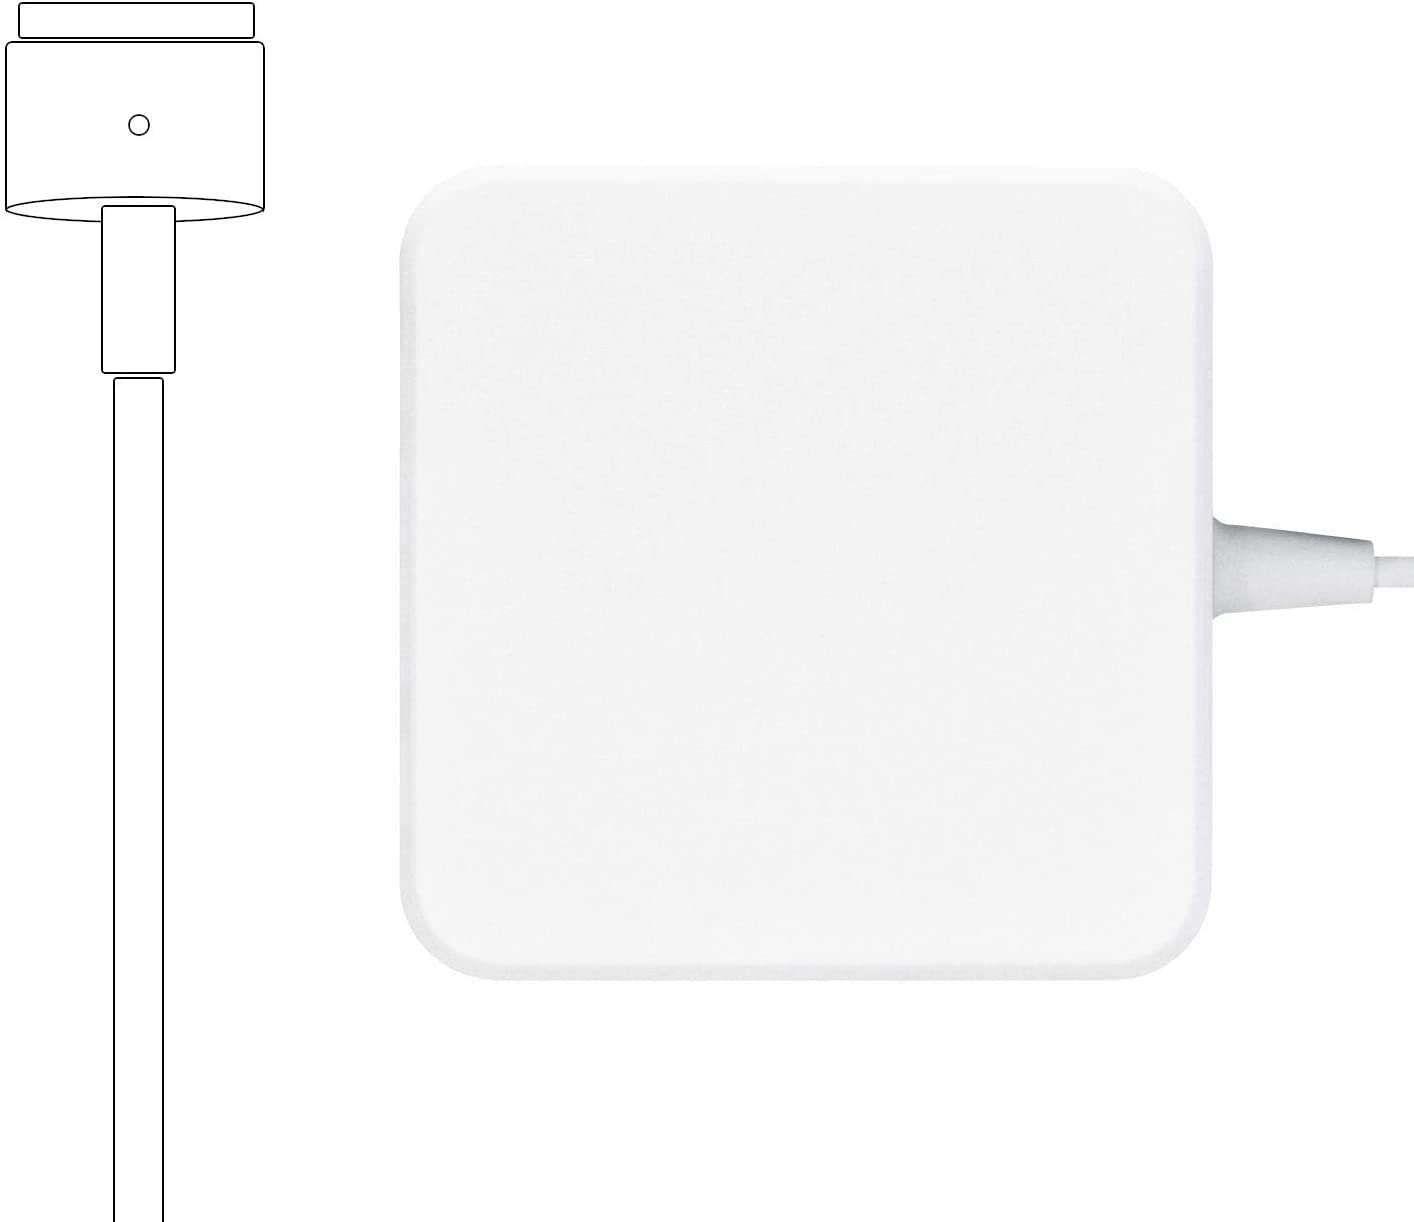 Replacement MacBook Pro Charger, 85W Power Adapter Magnetic T-Tip for Magsafe 2 Mac Book Pro with Retina Display After Mid 2012 by Uflatek